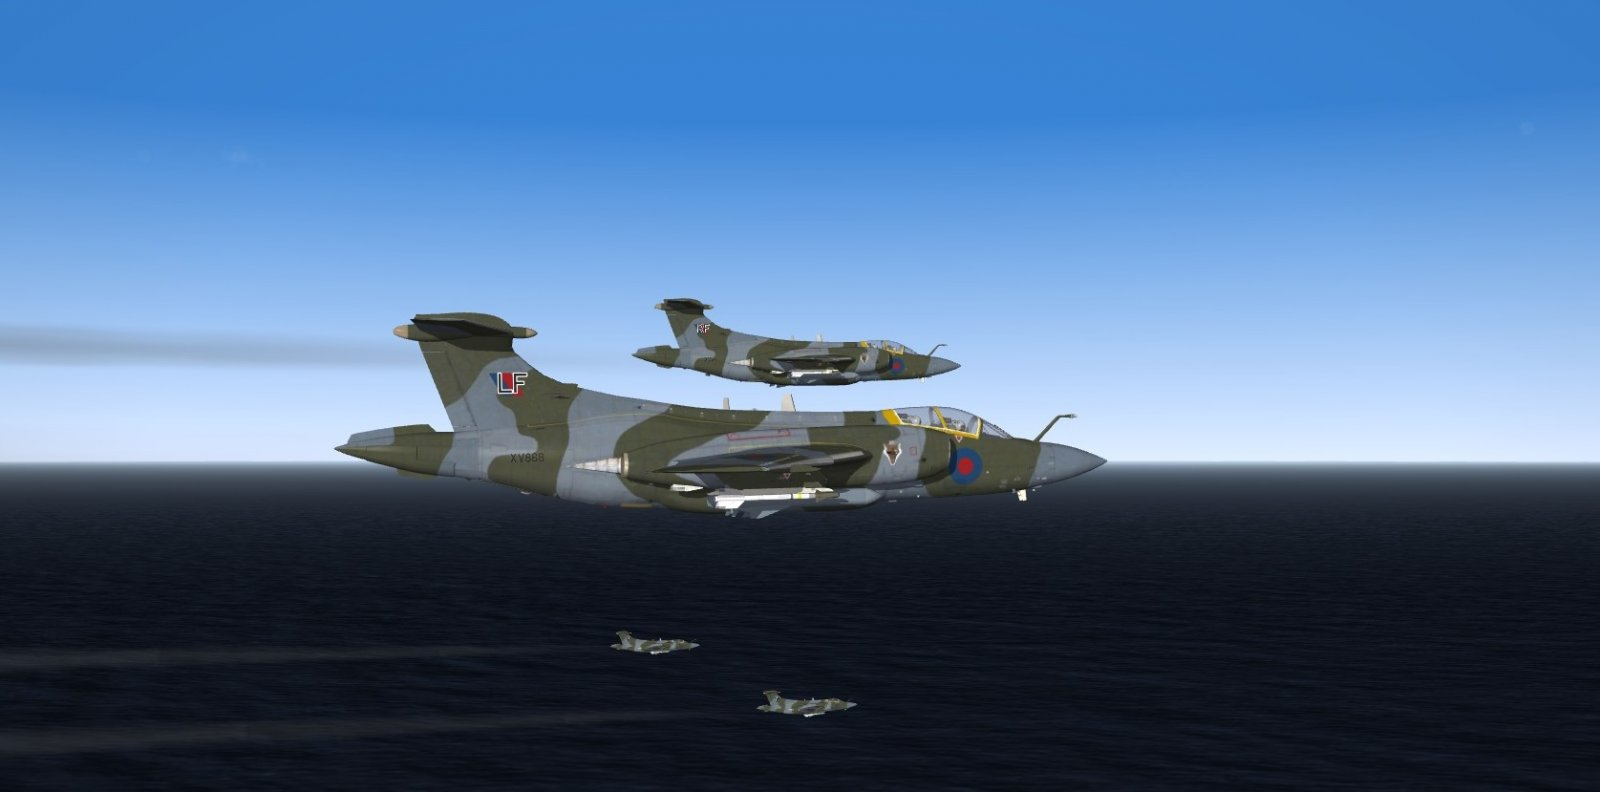 Royal Air Force Buccaneer, 12 Sqn anti shipping with Sea Eagle missile